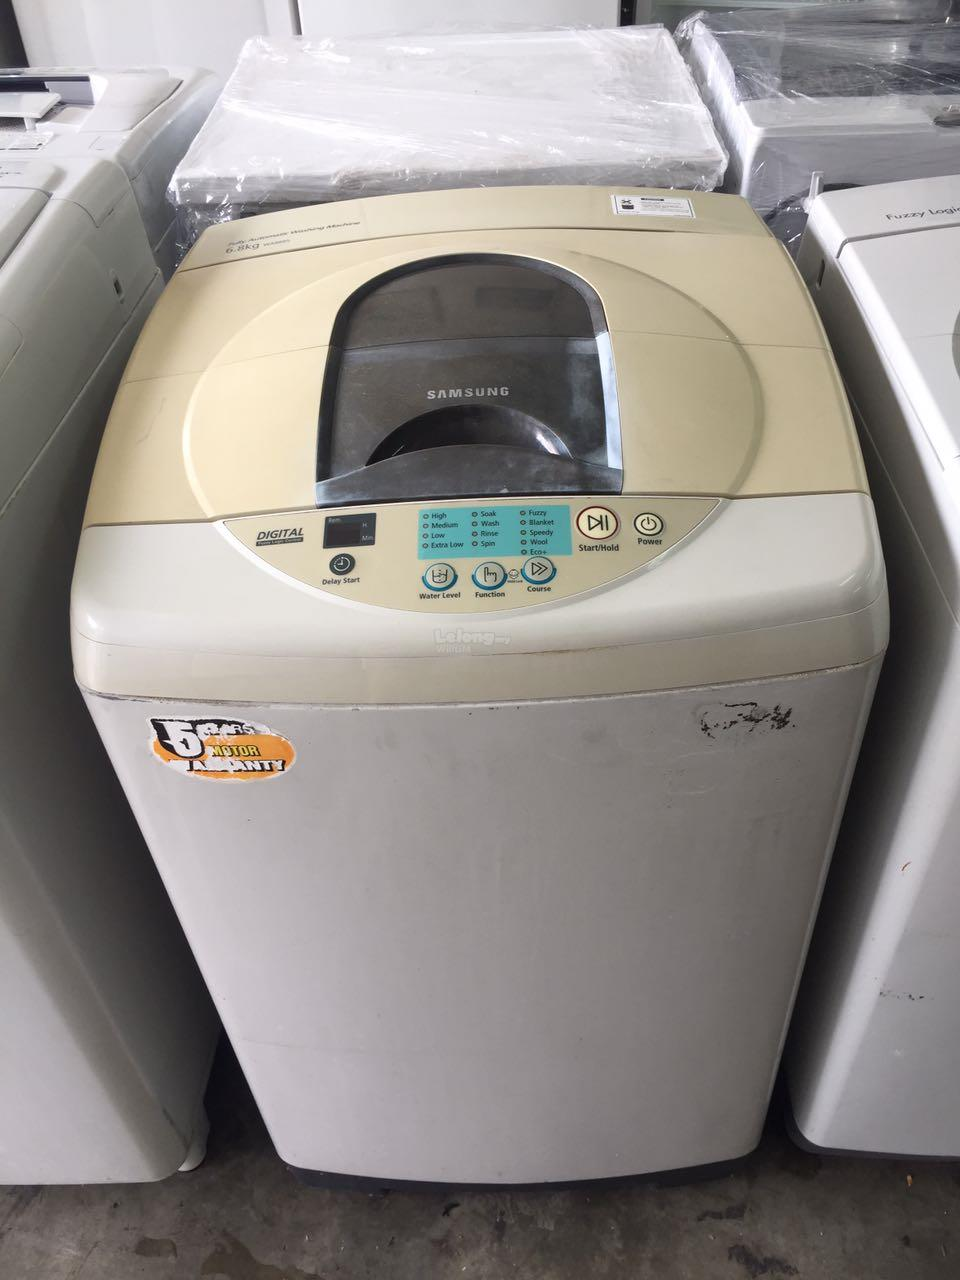 Mesin Basuh Samsung Top Fully Auto Washer Load Refurbish Recondition